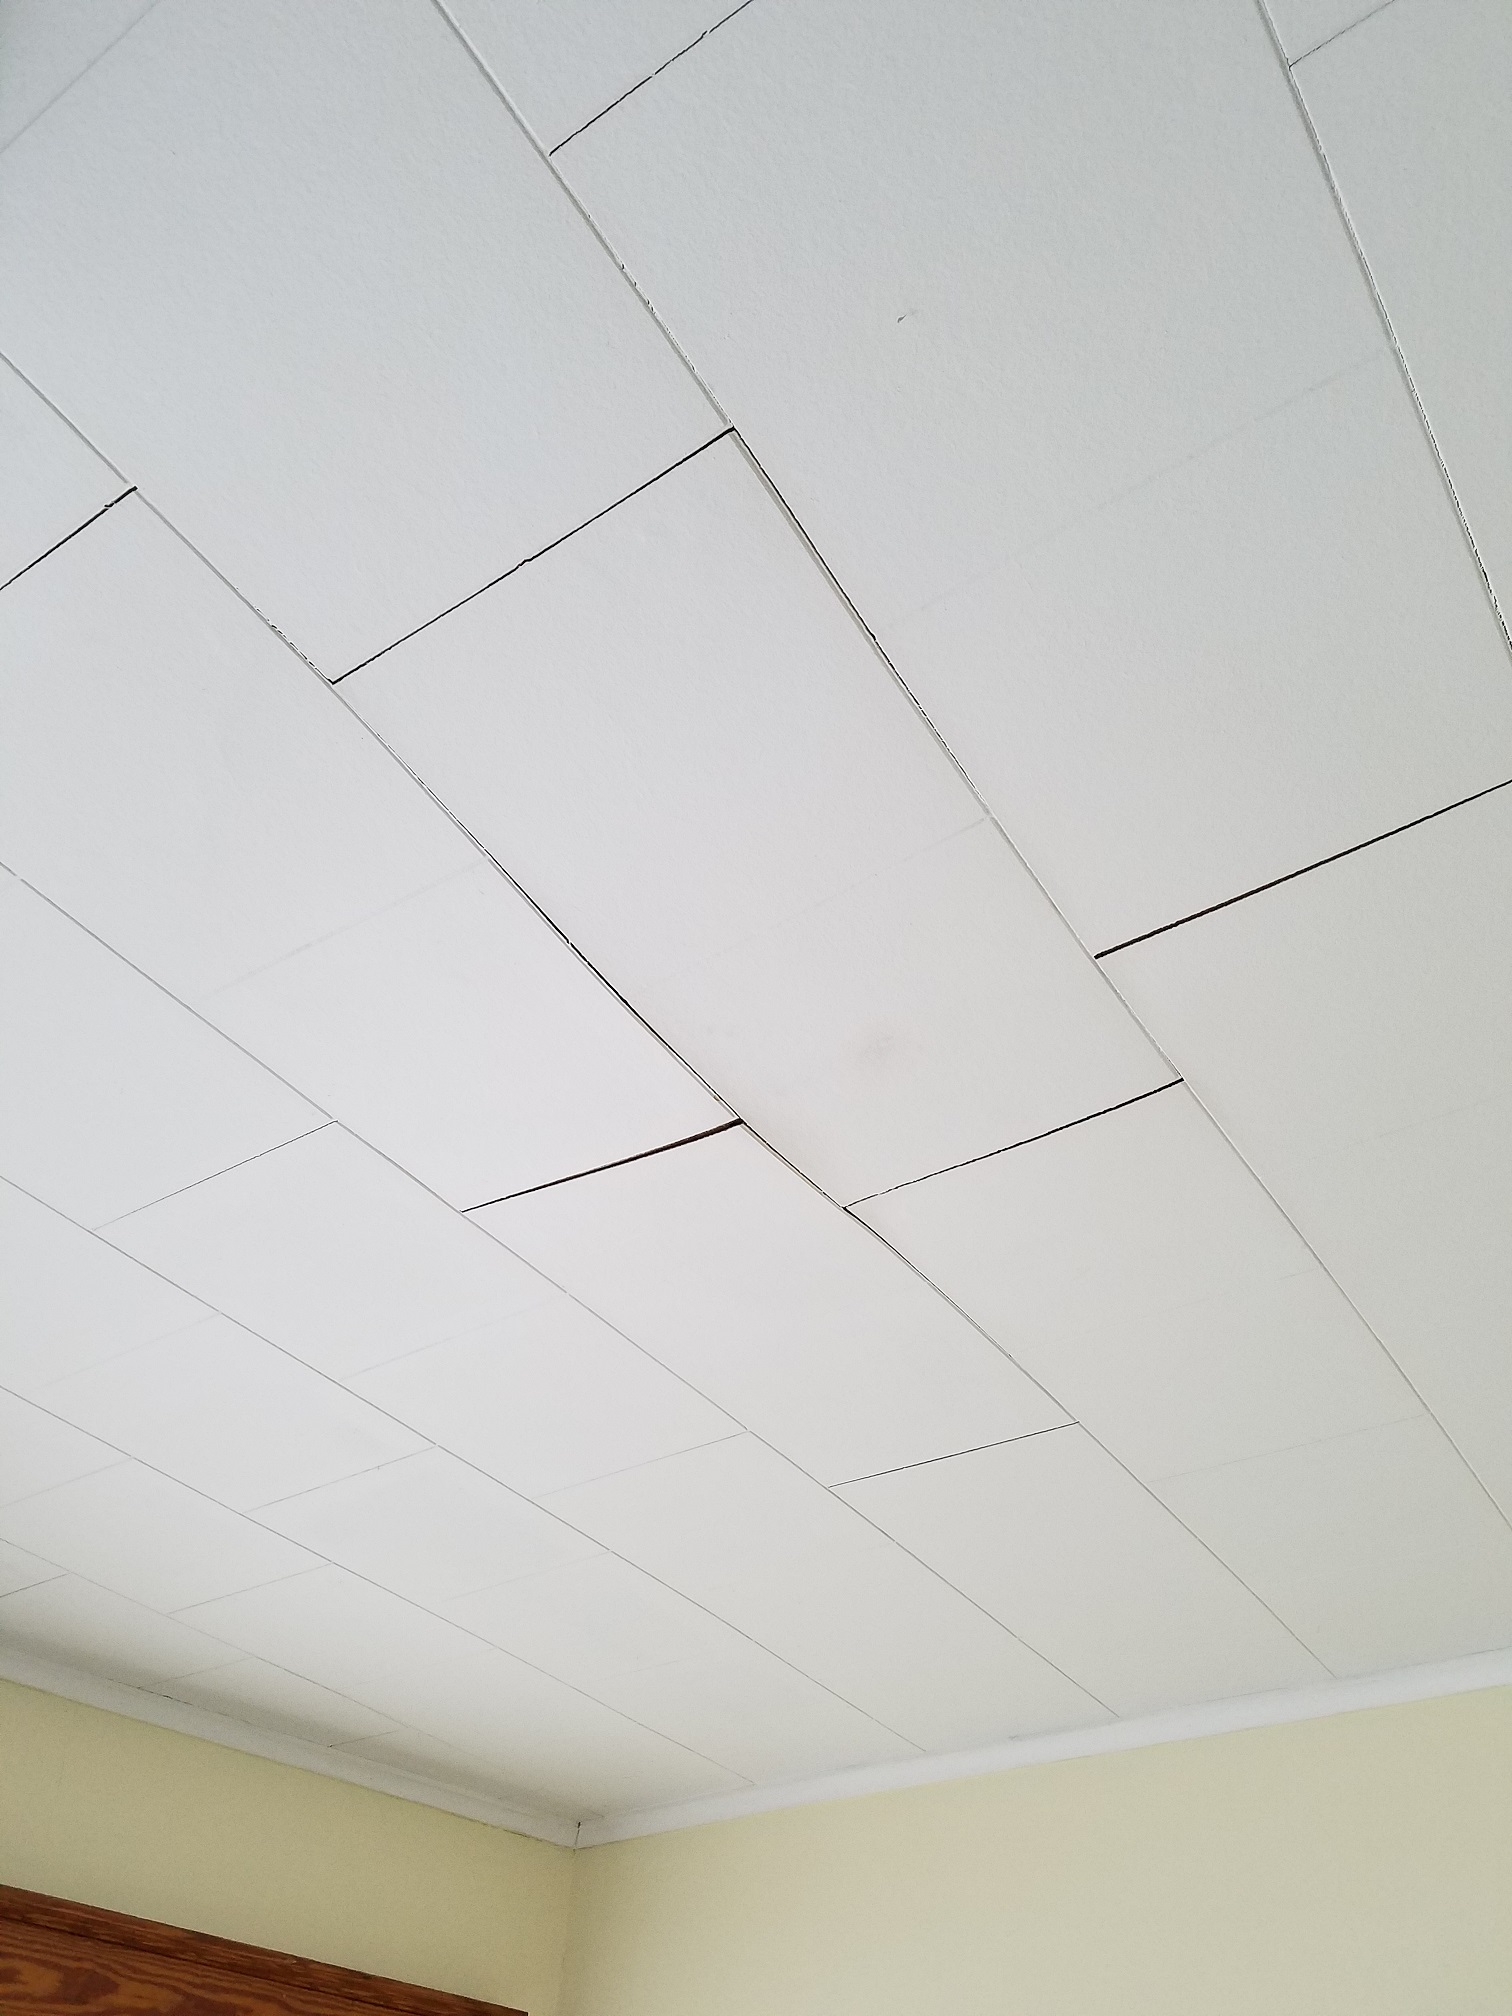 i replace these old ceiling tiles